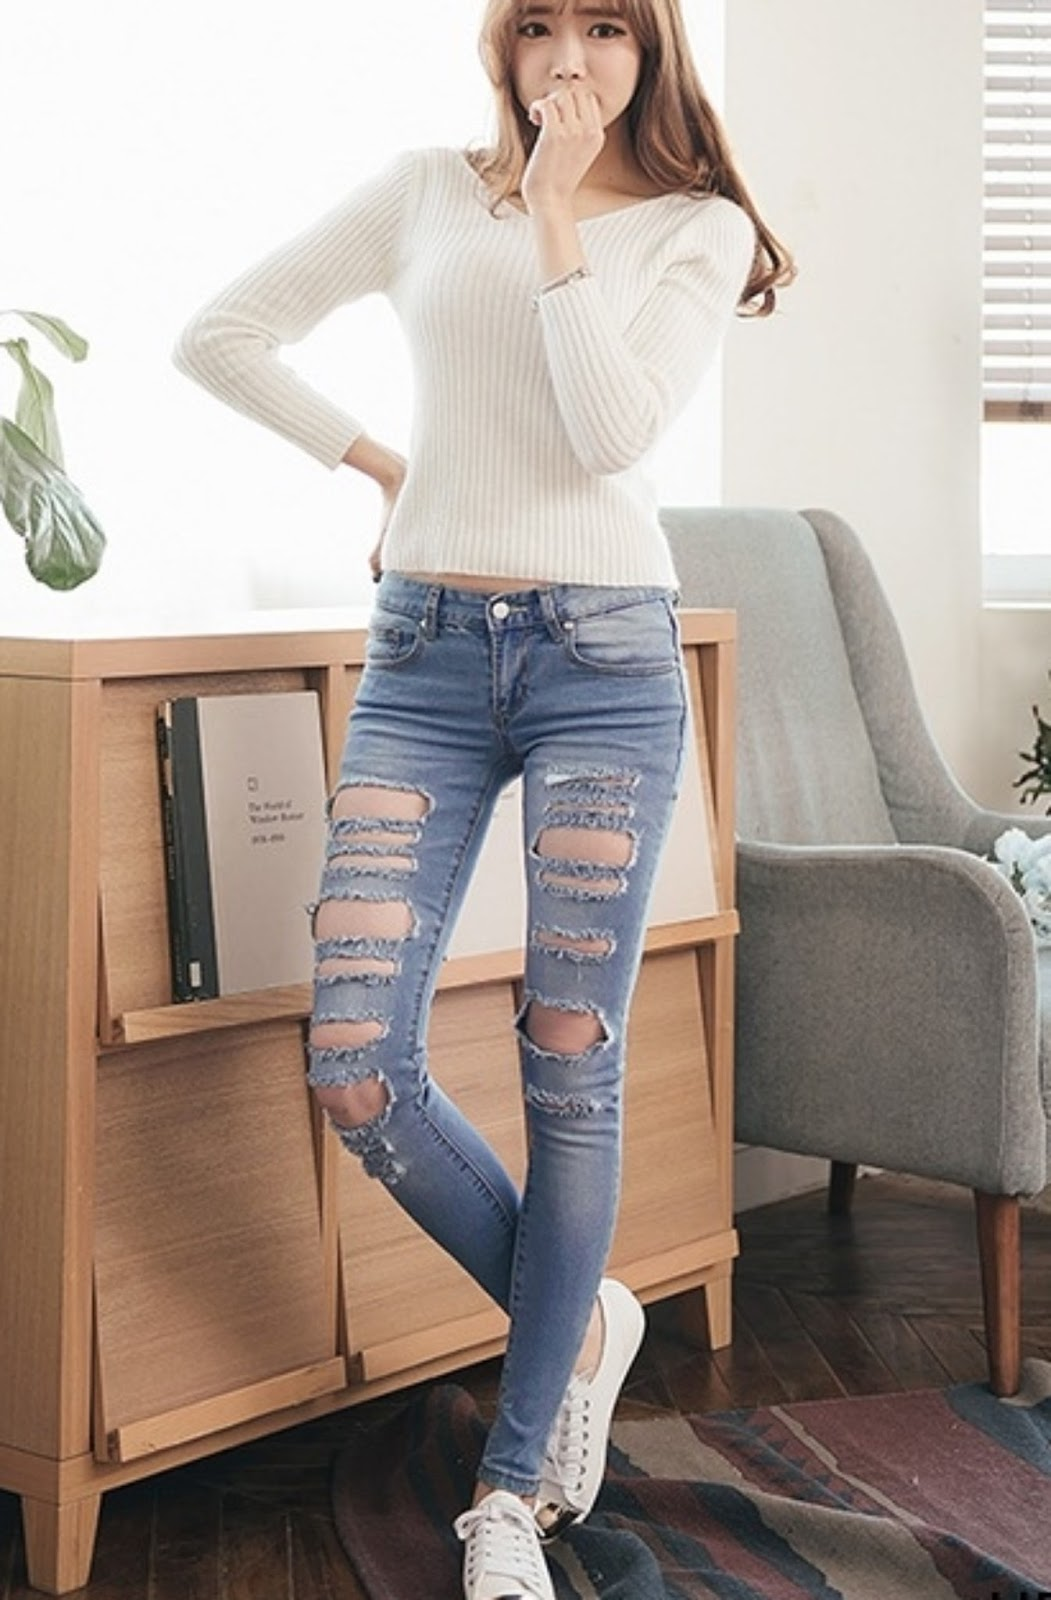 Sexy Teen Girls In Tight Jeans